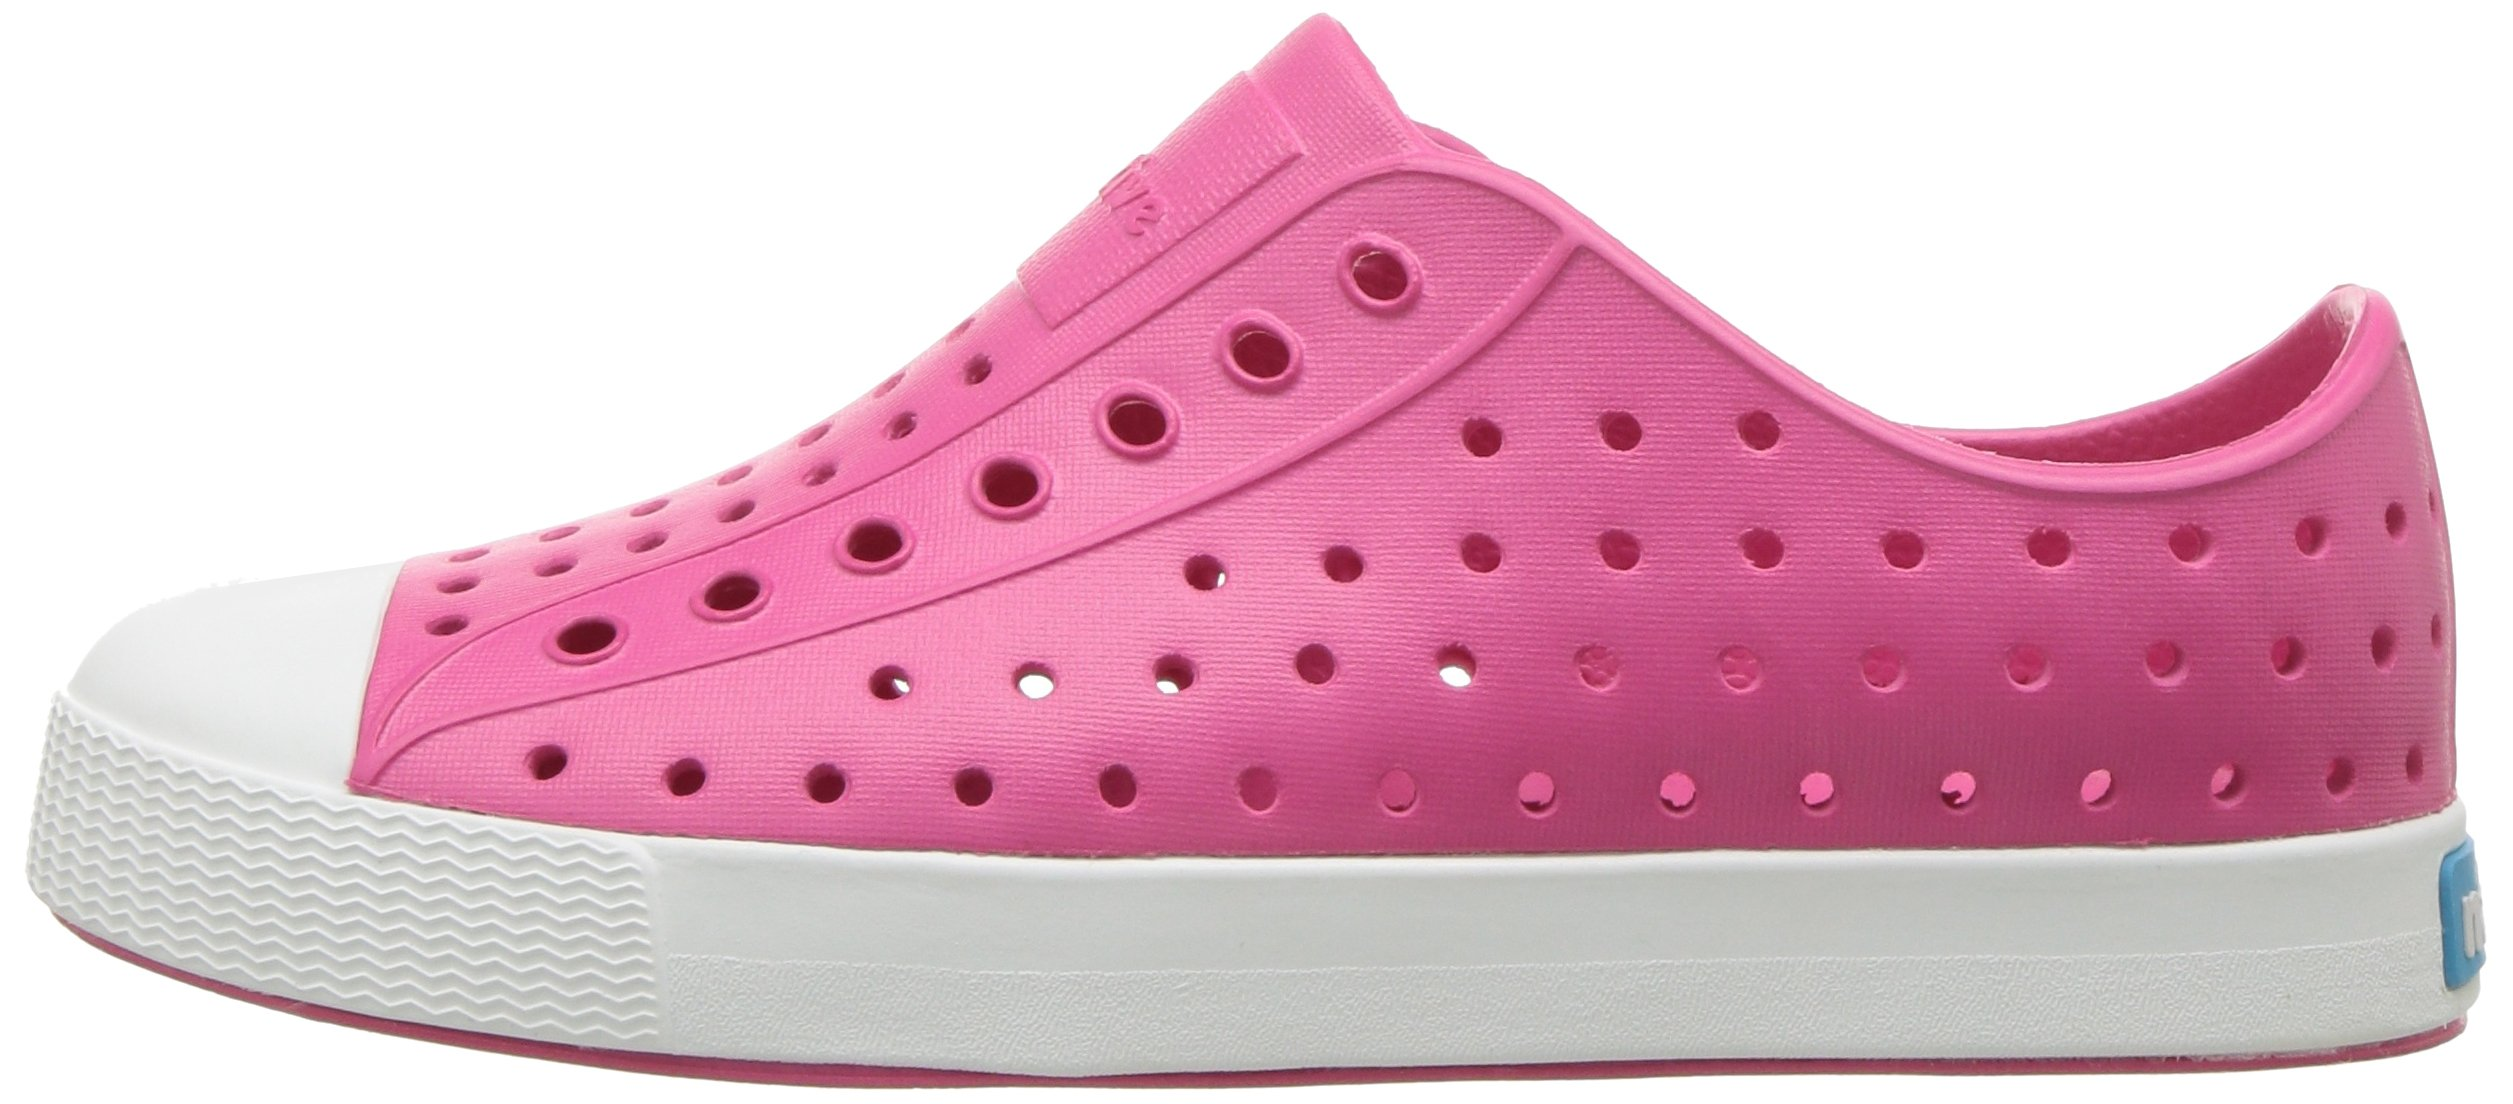 Native Kids Girls Jefferson Junior Water Proof Shoes, Hollywood Pink/Shell White, 6 Medium US Big Kid by Native Shoes (Image #5)